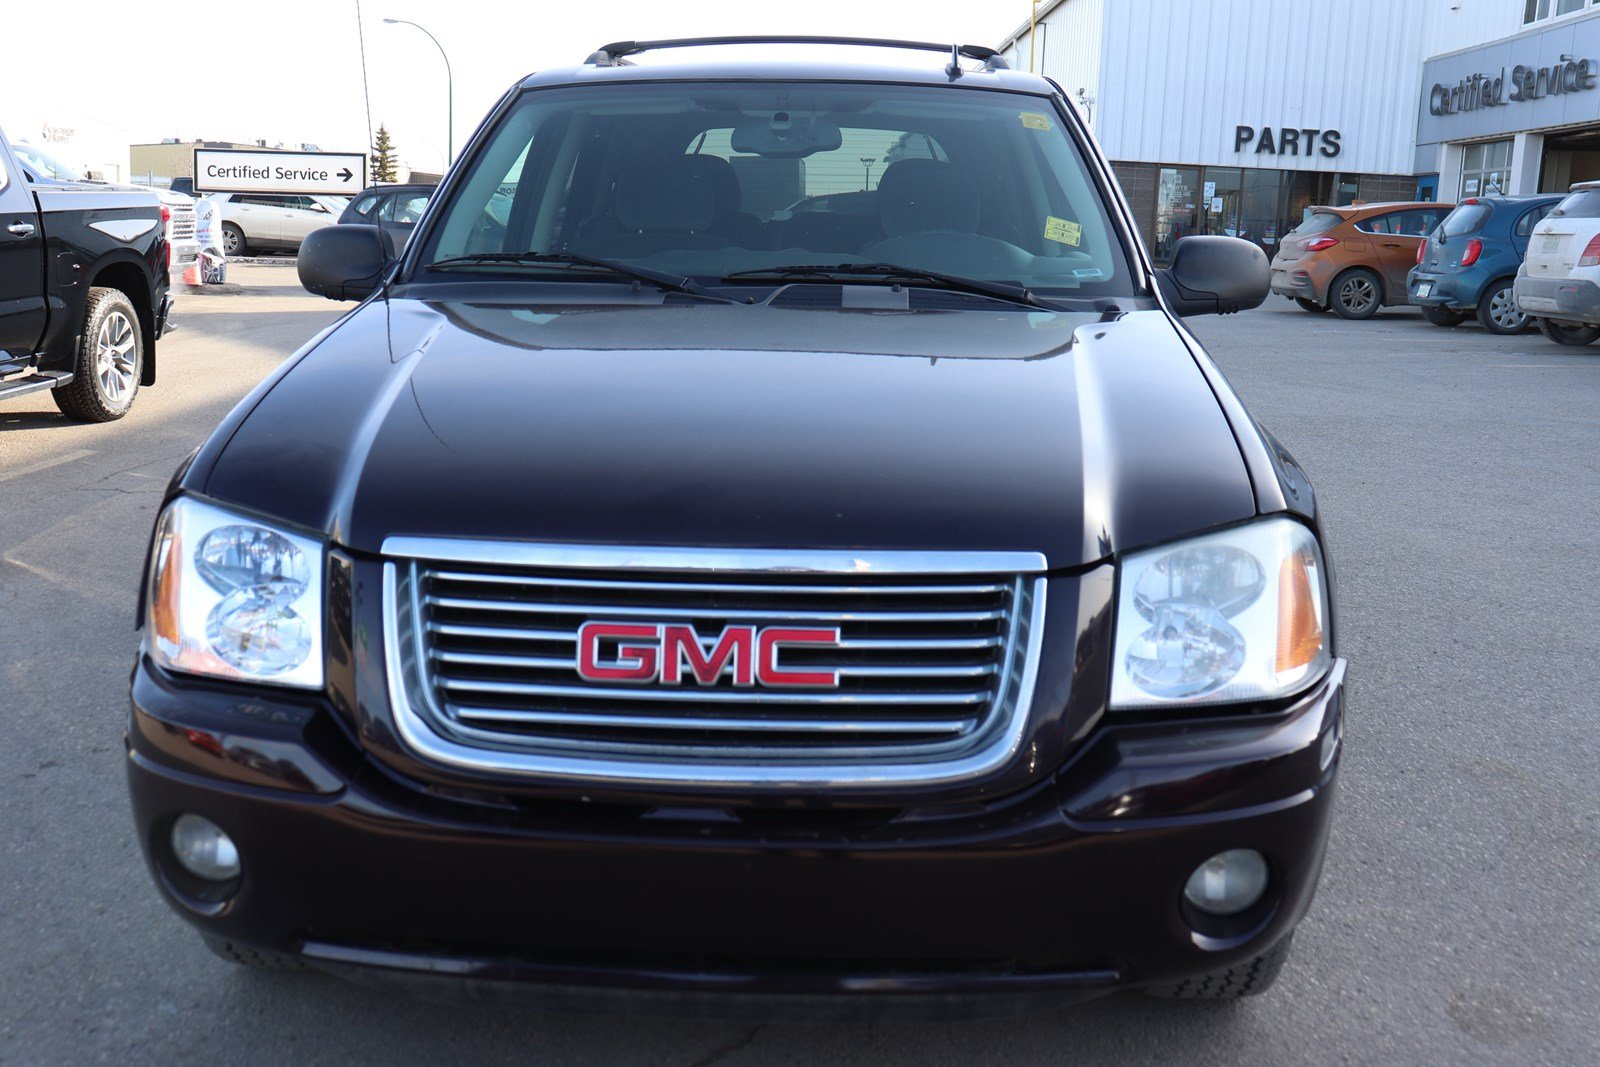 Pre-Owned 2009 GMC Envoy SLE - Remote Start, Pwr Seat, Sunroof